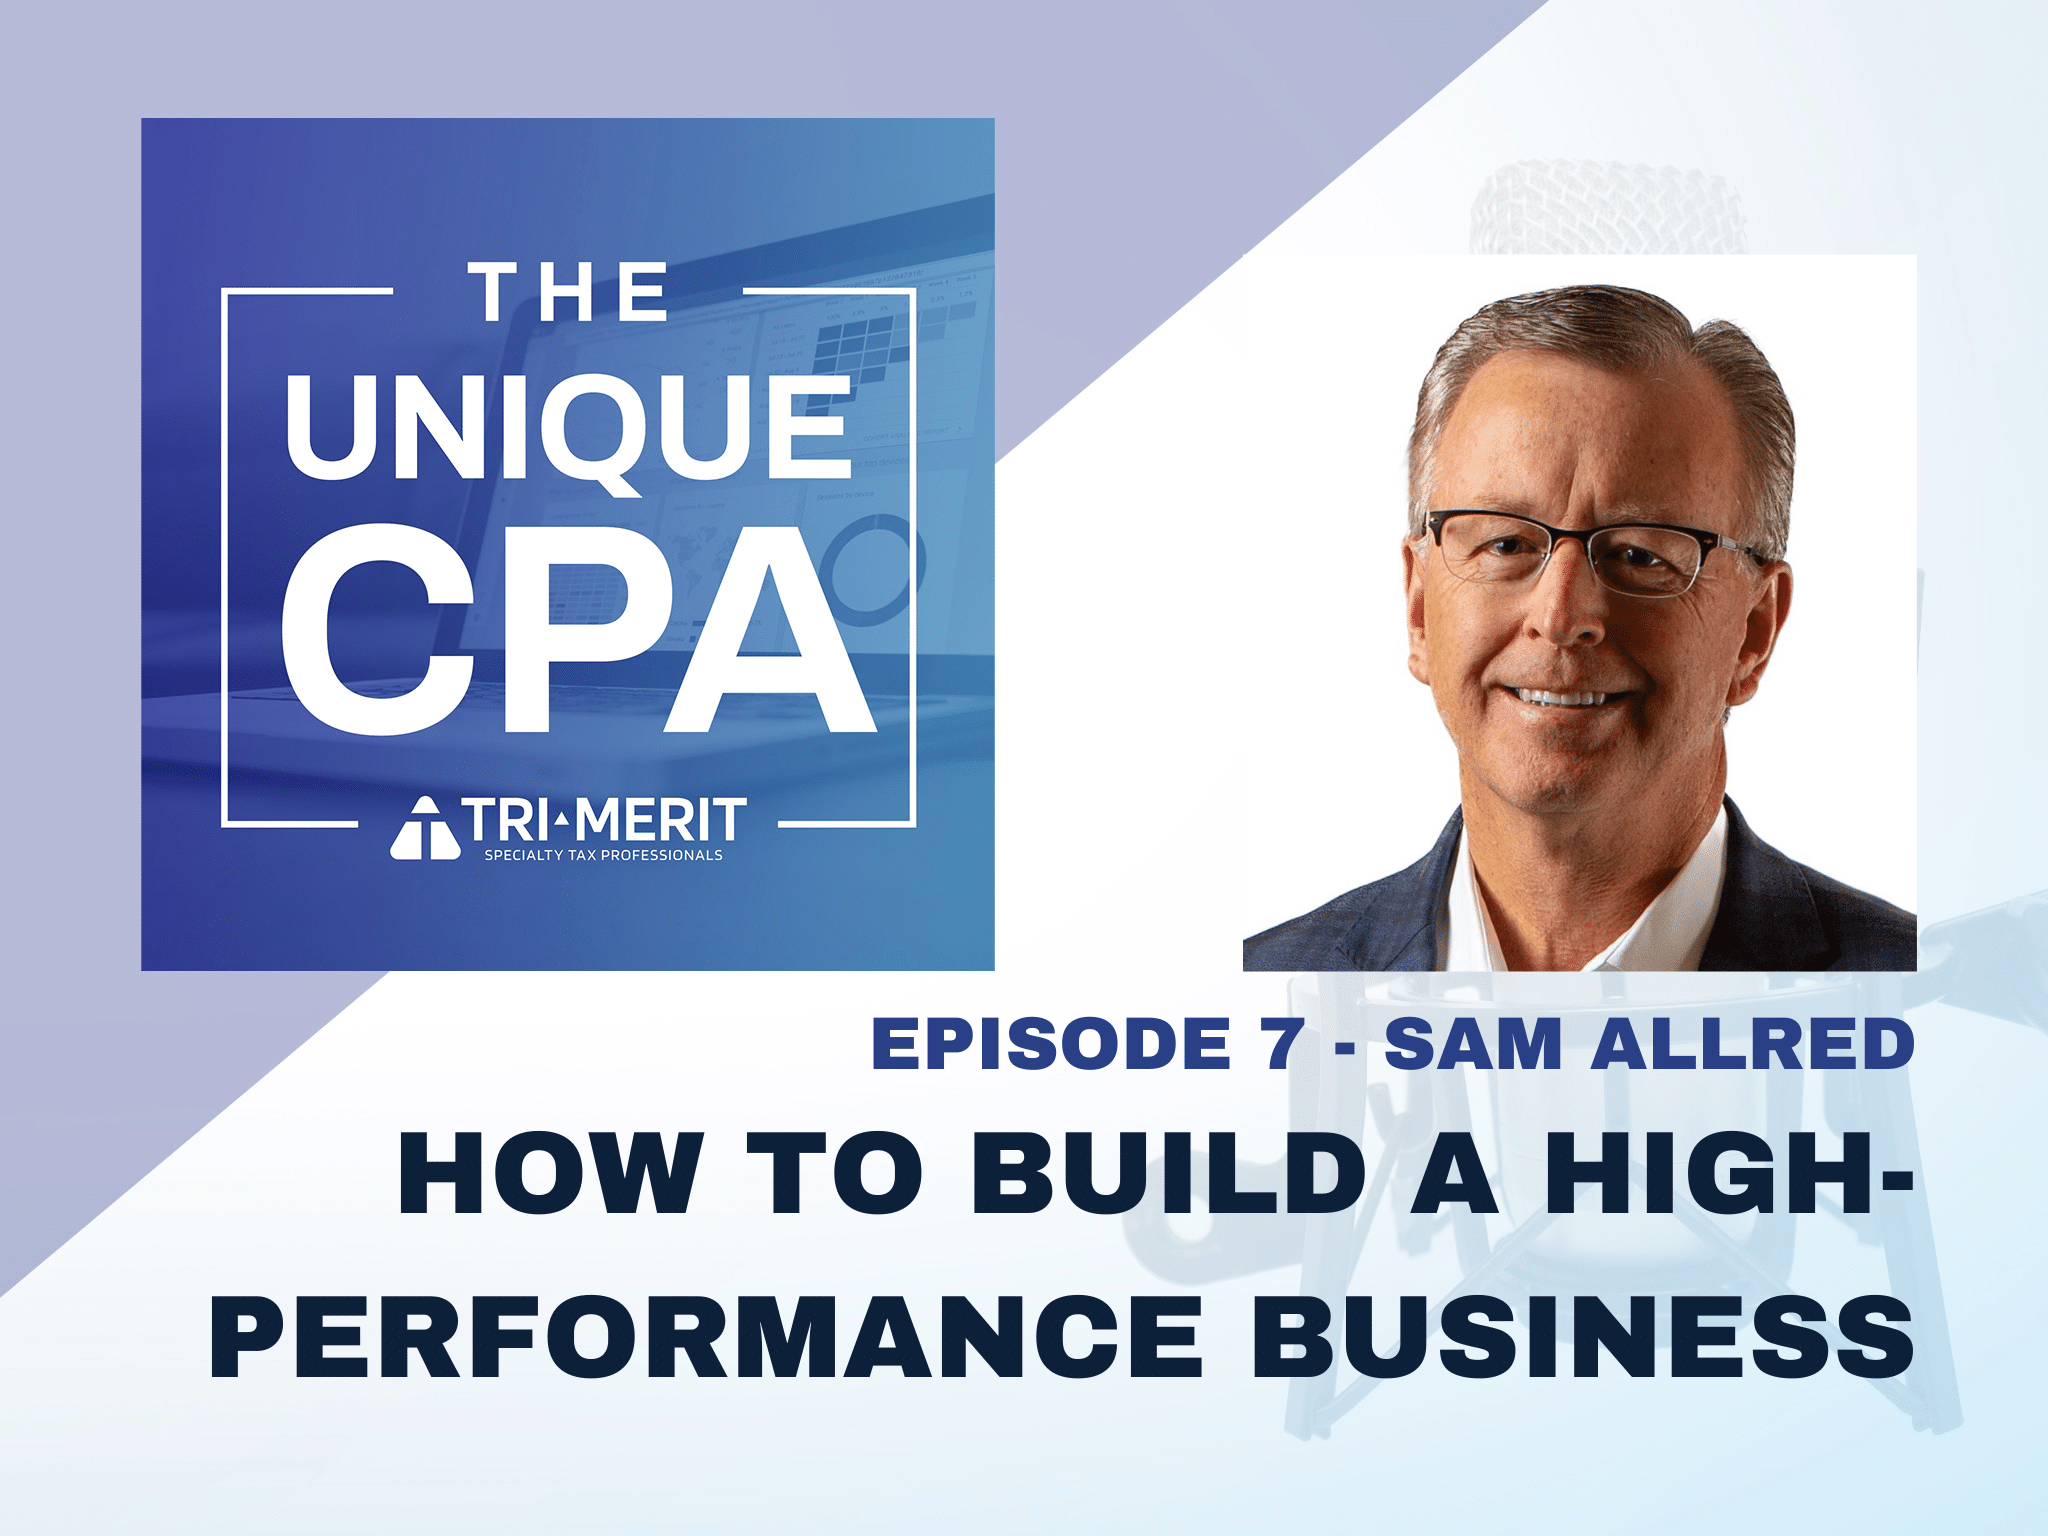 The Unique CPA Feature Image Ep 7 - How to Build a High-Performance Business - Tri-Merit